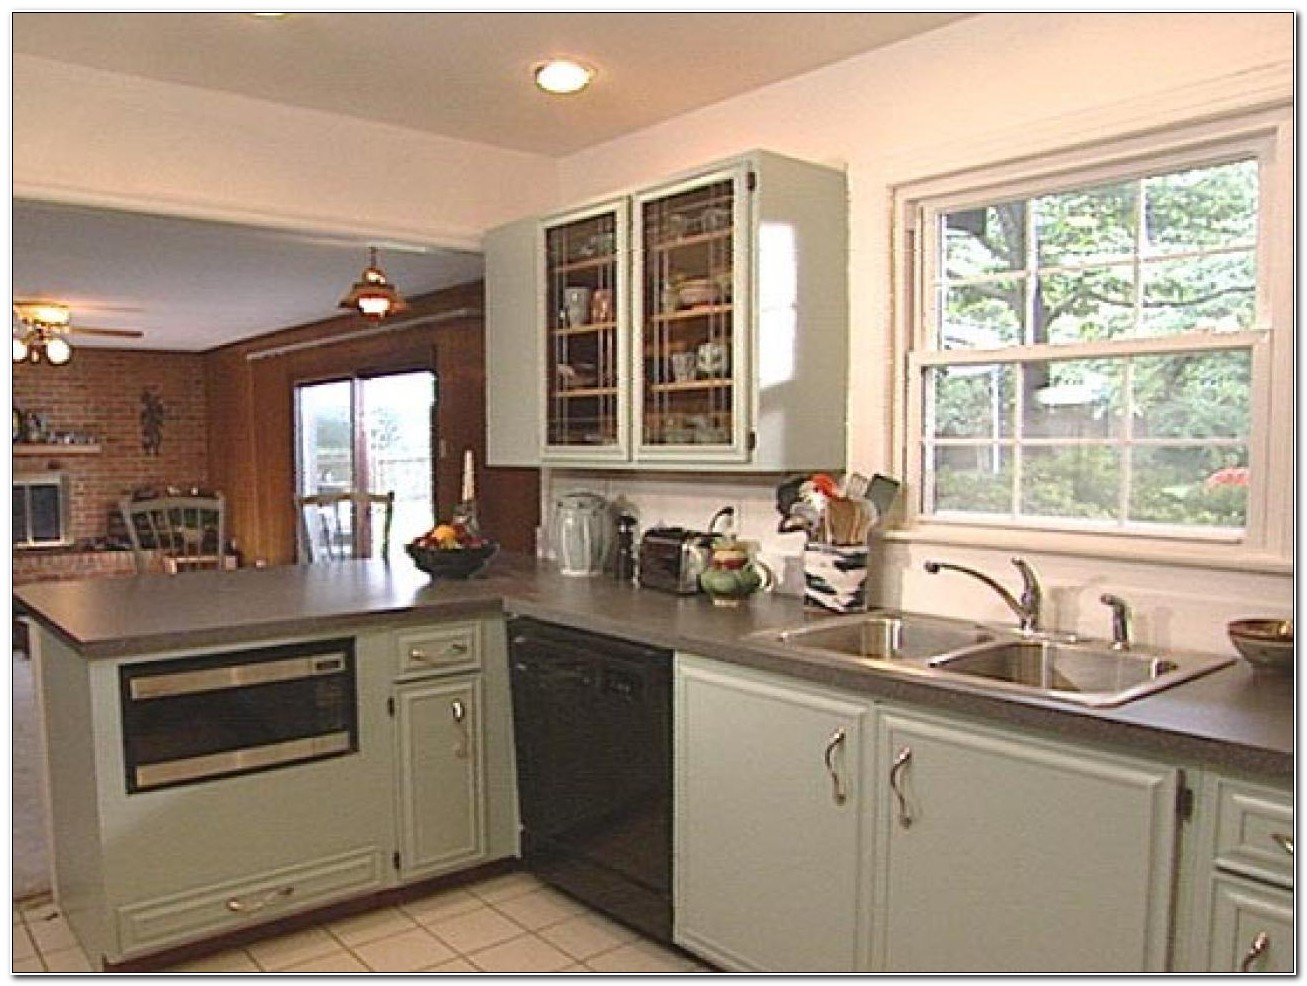 Refinishing Old Painted Kitchen Cabinets